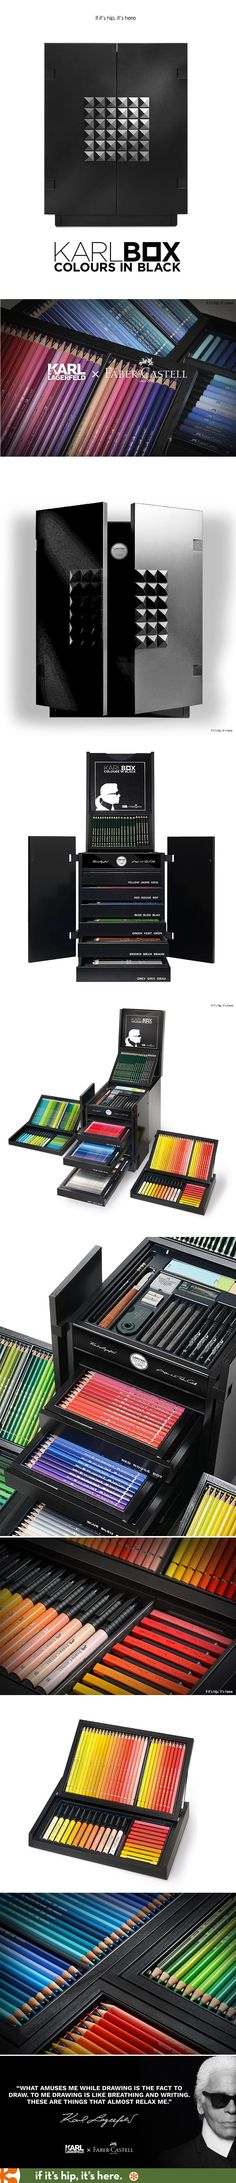 Wow. The new KARLBOX, a collaboration between Karl Lagerfeld and Faber-Castell is a 350-piece art supply kit housed in a box inspired by a Chinese Wedding Chest.